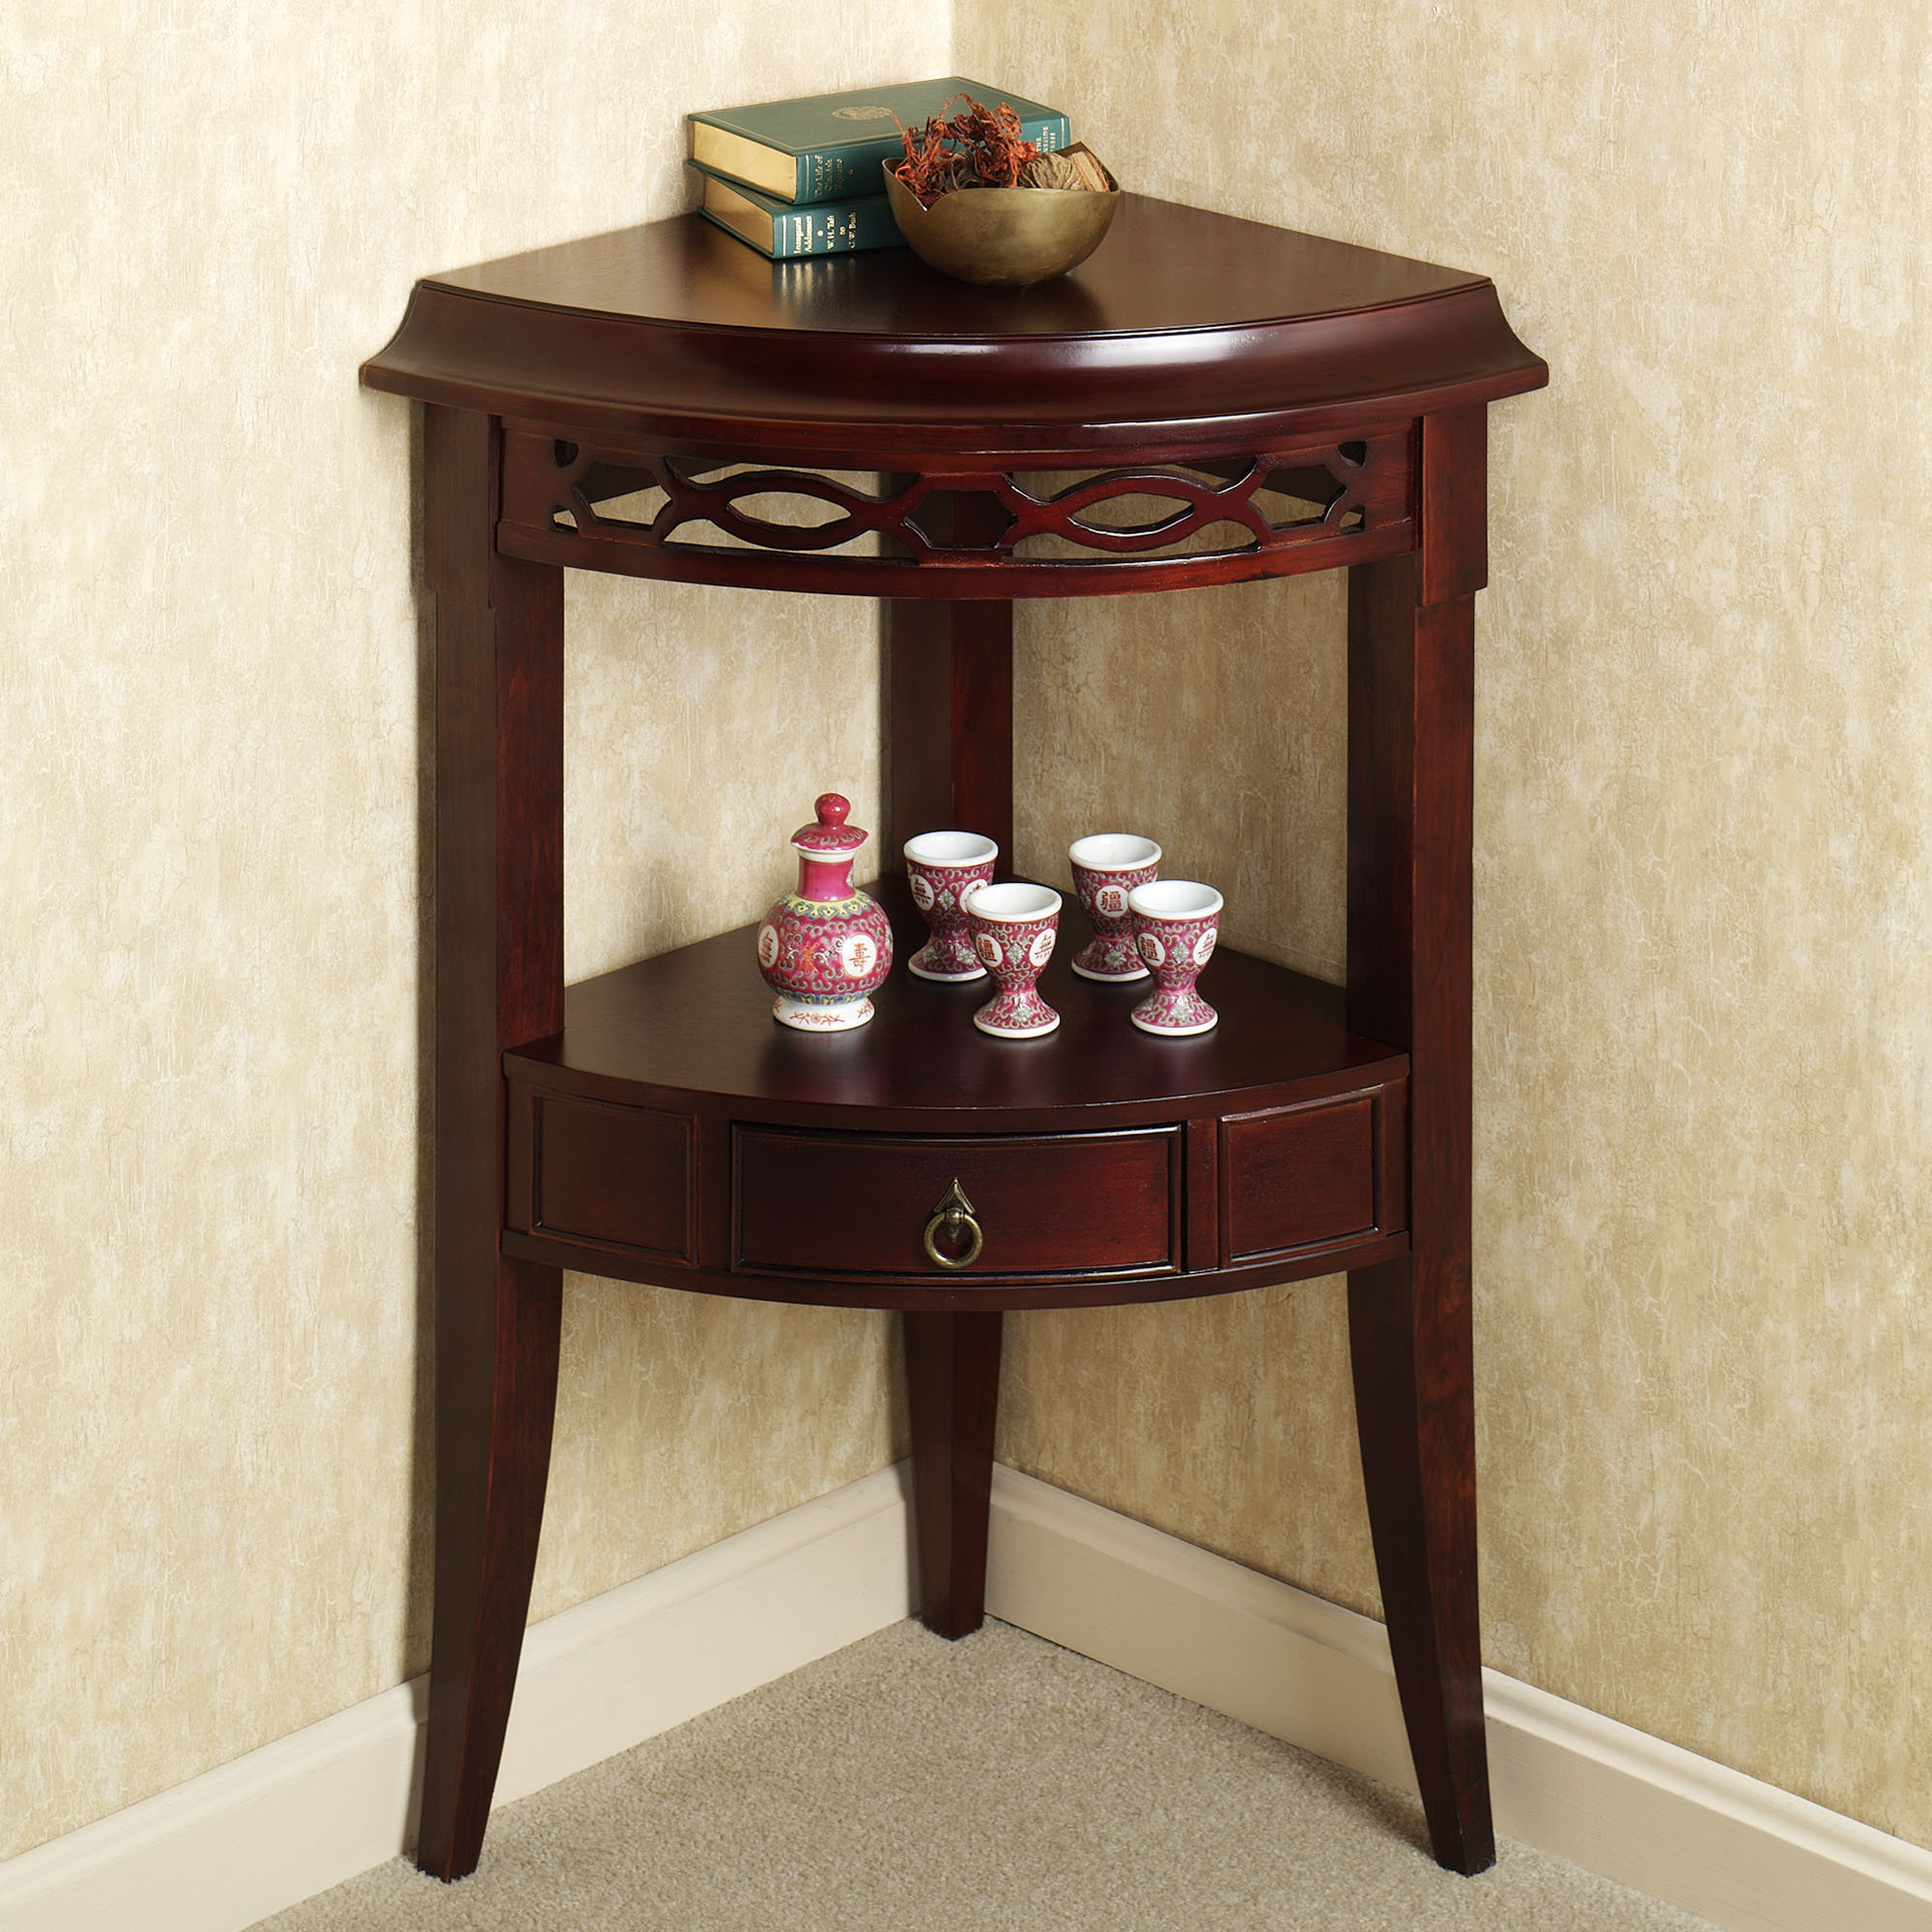 small corner accent table with drawer aruza drawers kitchen furniture ikea cube storage target dishes mirrored coffee style dining bath and beyond salt lamp light attached kohls